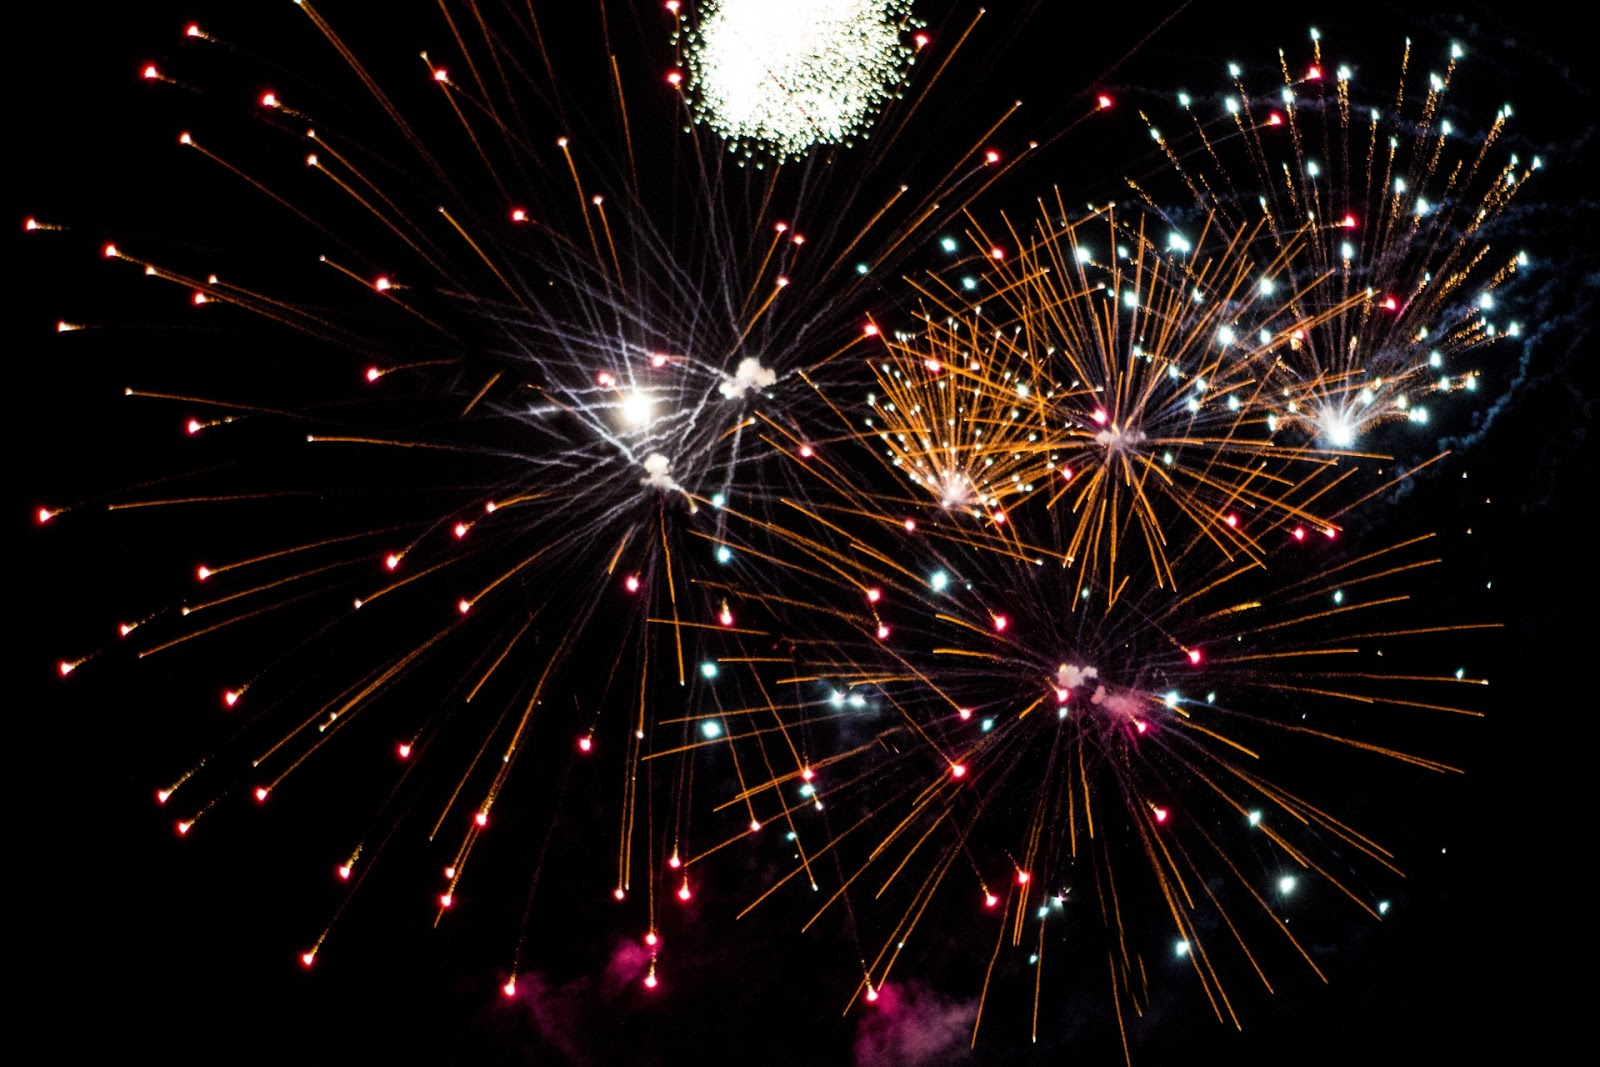 http://www.publicdomainpictures.net/view-image.php?image=48060&picture=fireworks-x-3